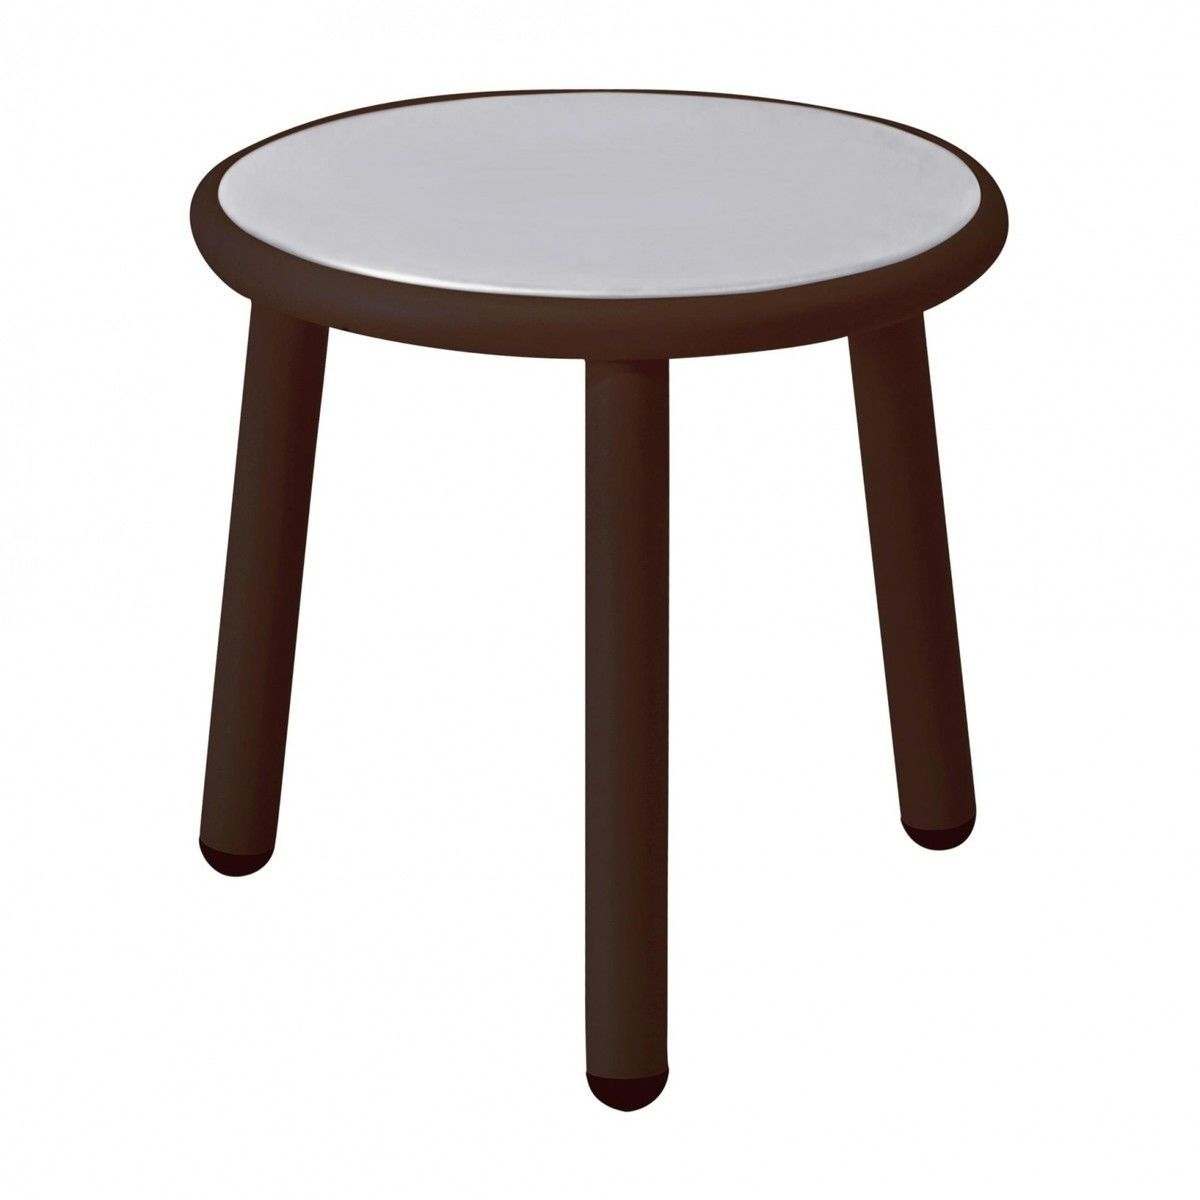 Emu   Yard Garden Side Table Ø 40cm   Indian Brown/light Grey/glossy